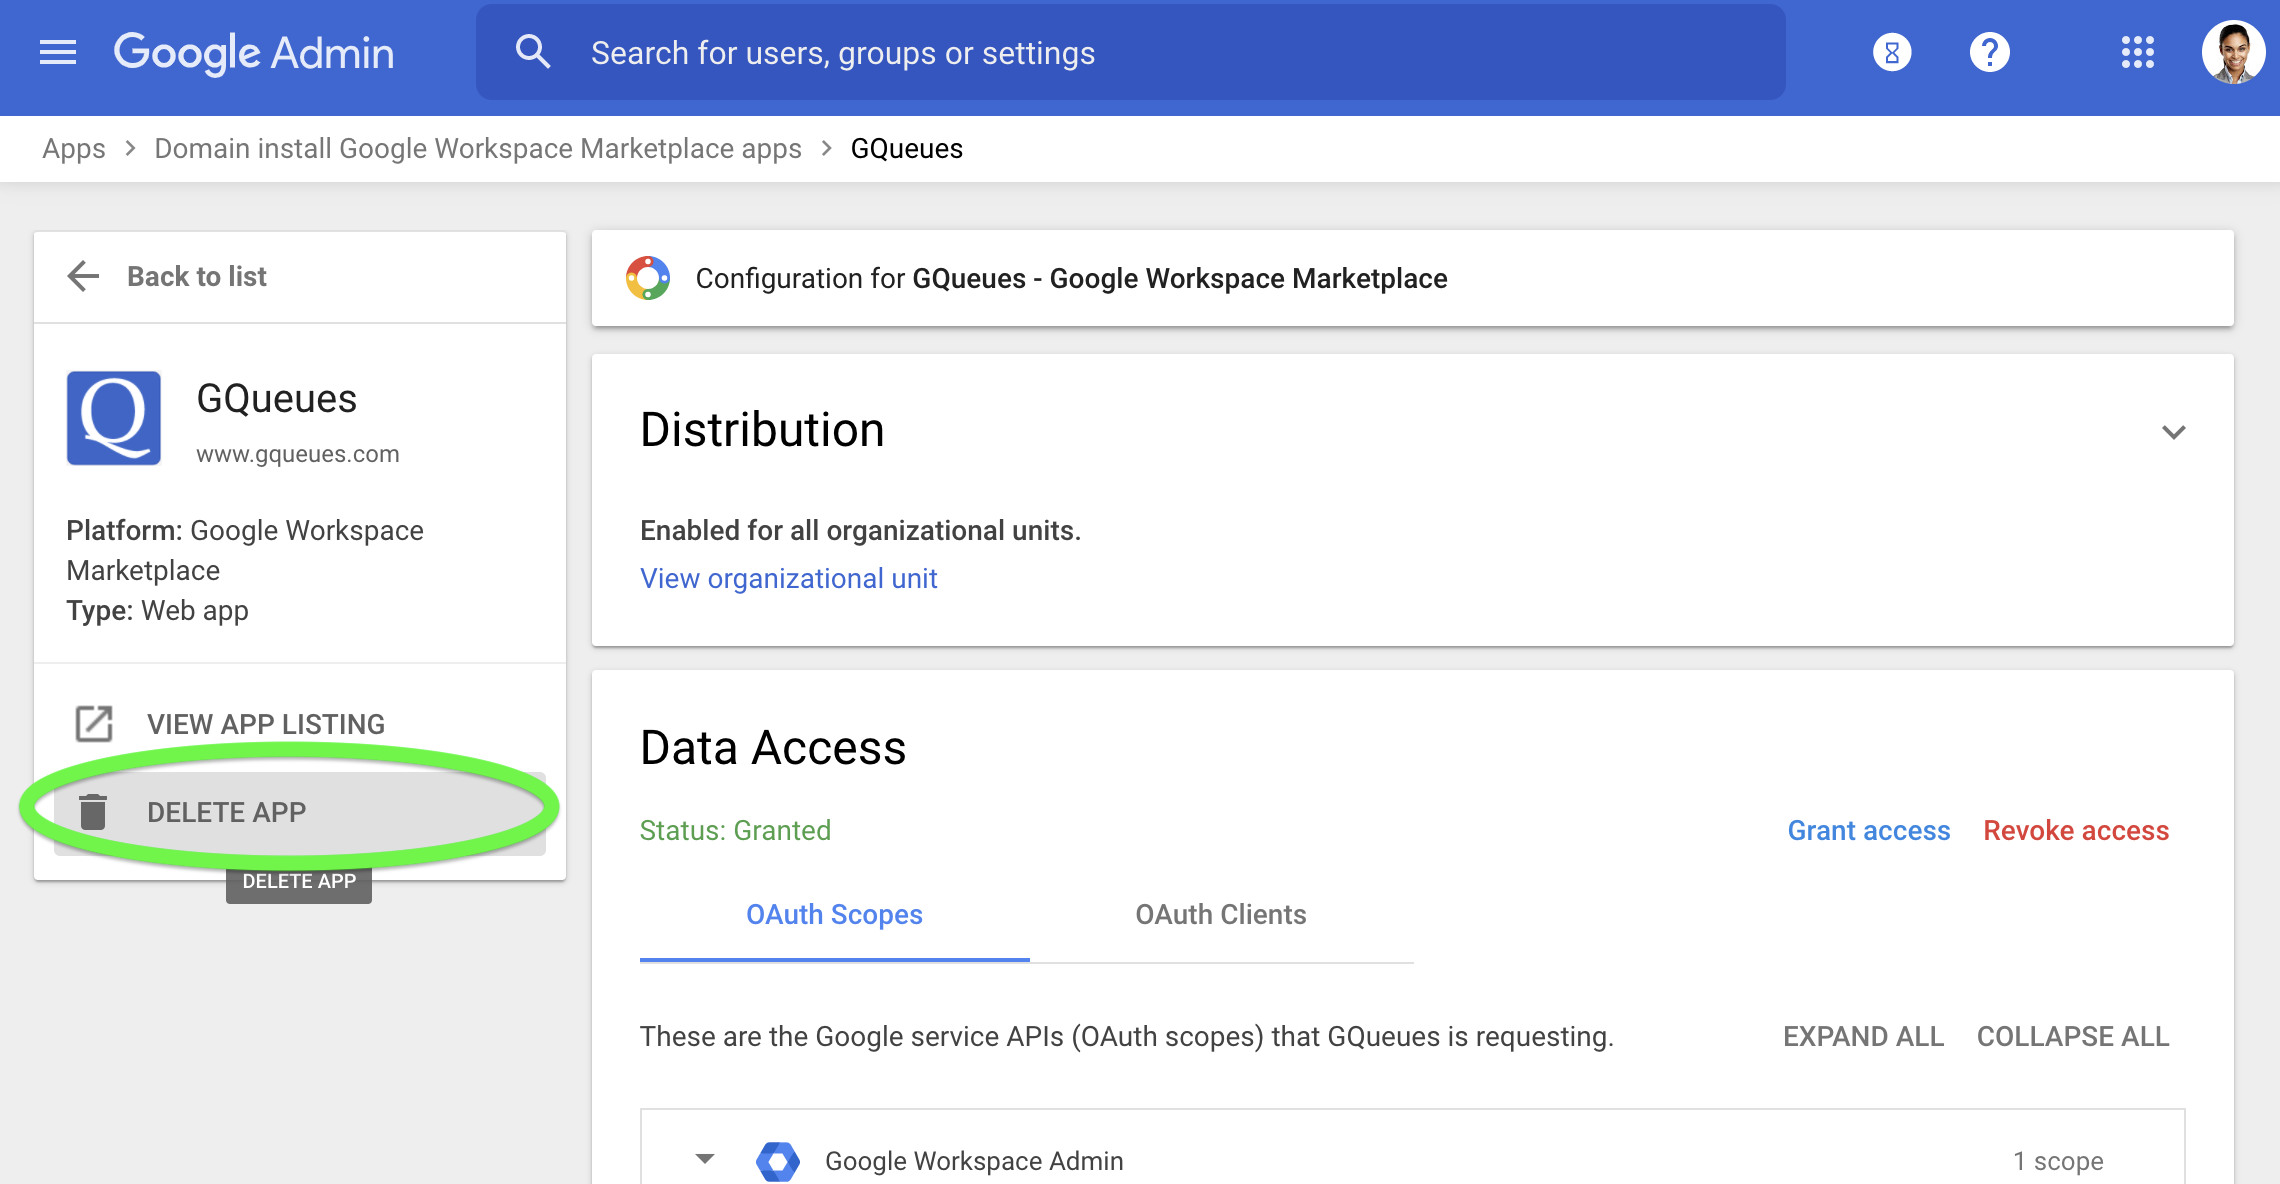 Select Delete App to uninstall it from your Google Workspace domain